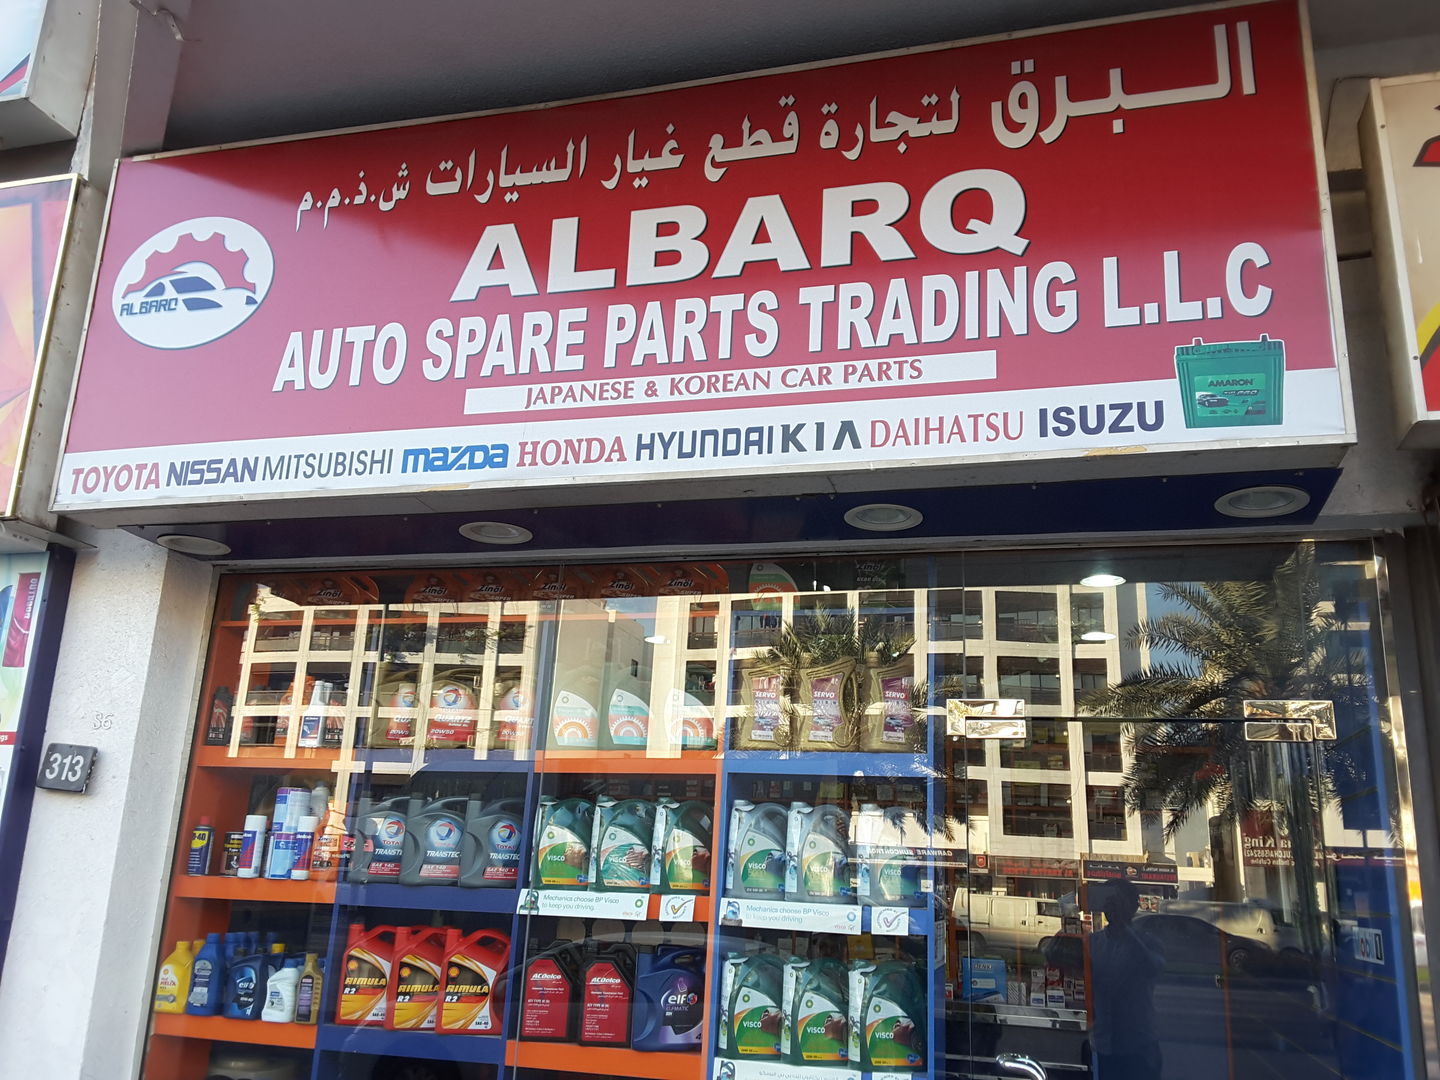 HiDubai-business-albarq-auto-spare-parts-trading-transport-vehicle-services-auto-spare-parts-accessories-al-quoz-industrial-1-dubai-2